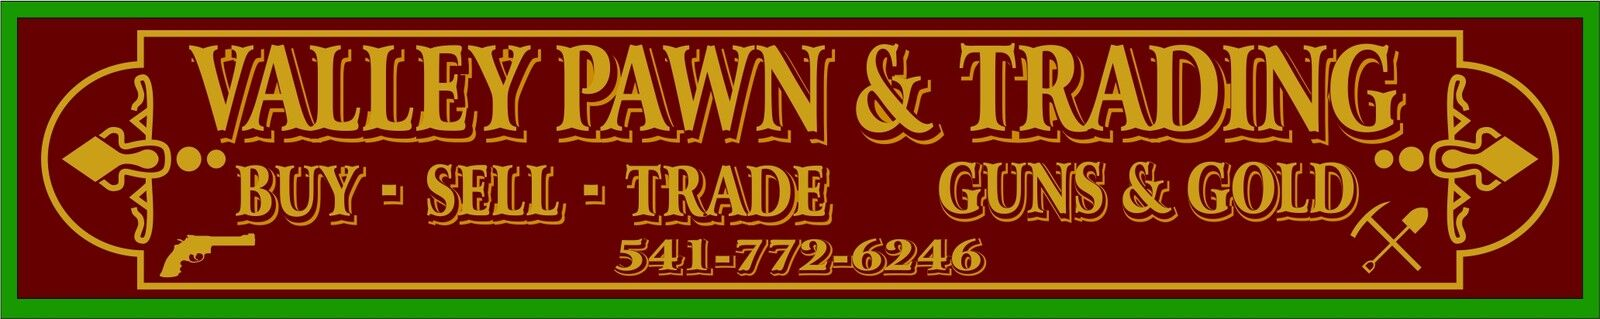 VALLEY PAWN AND TRADING